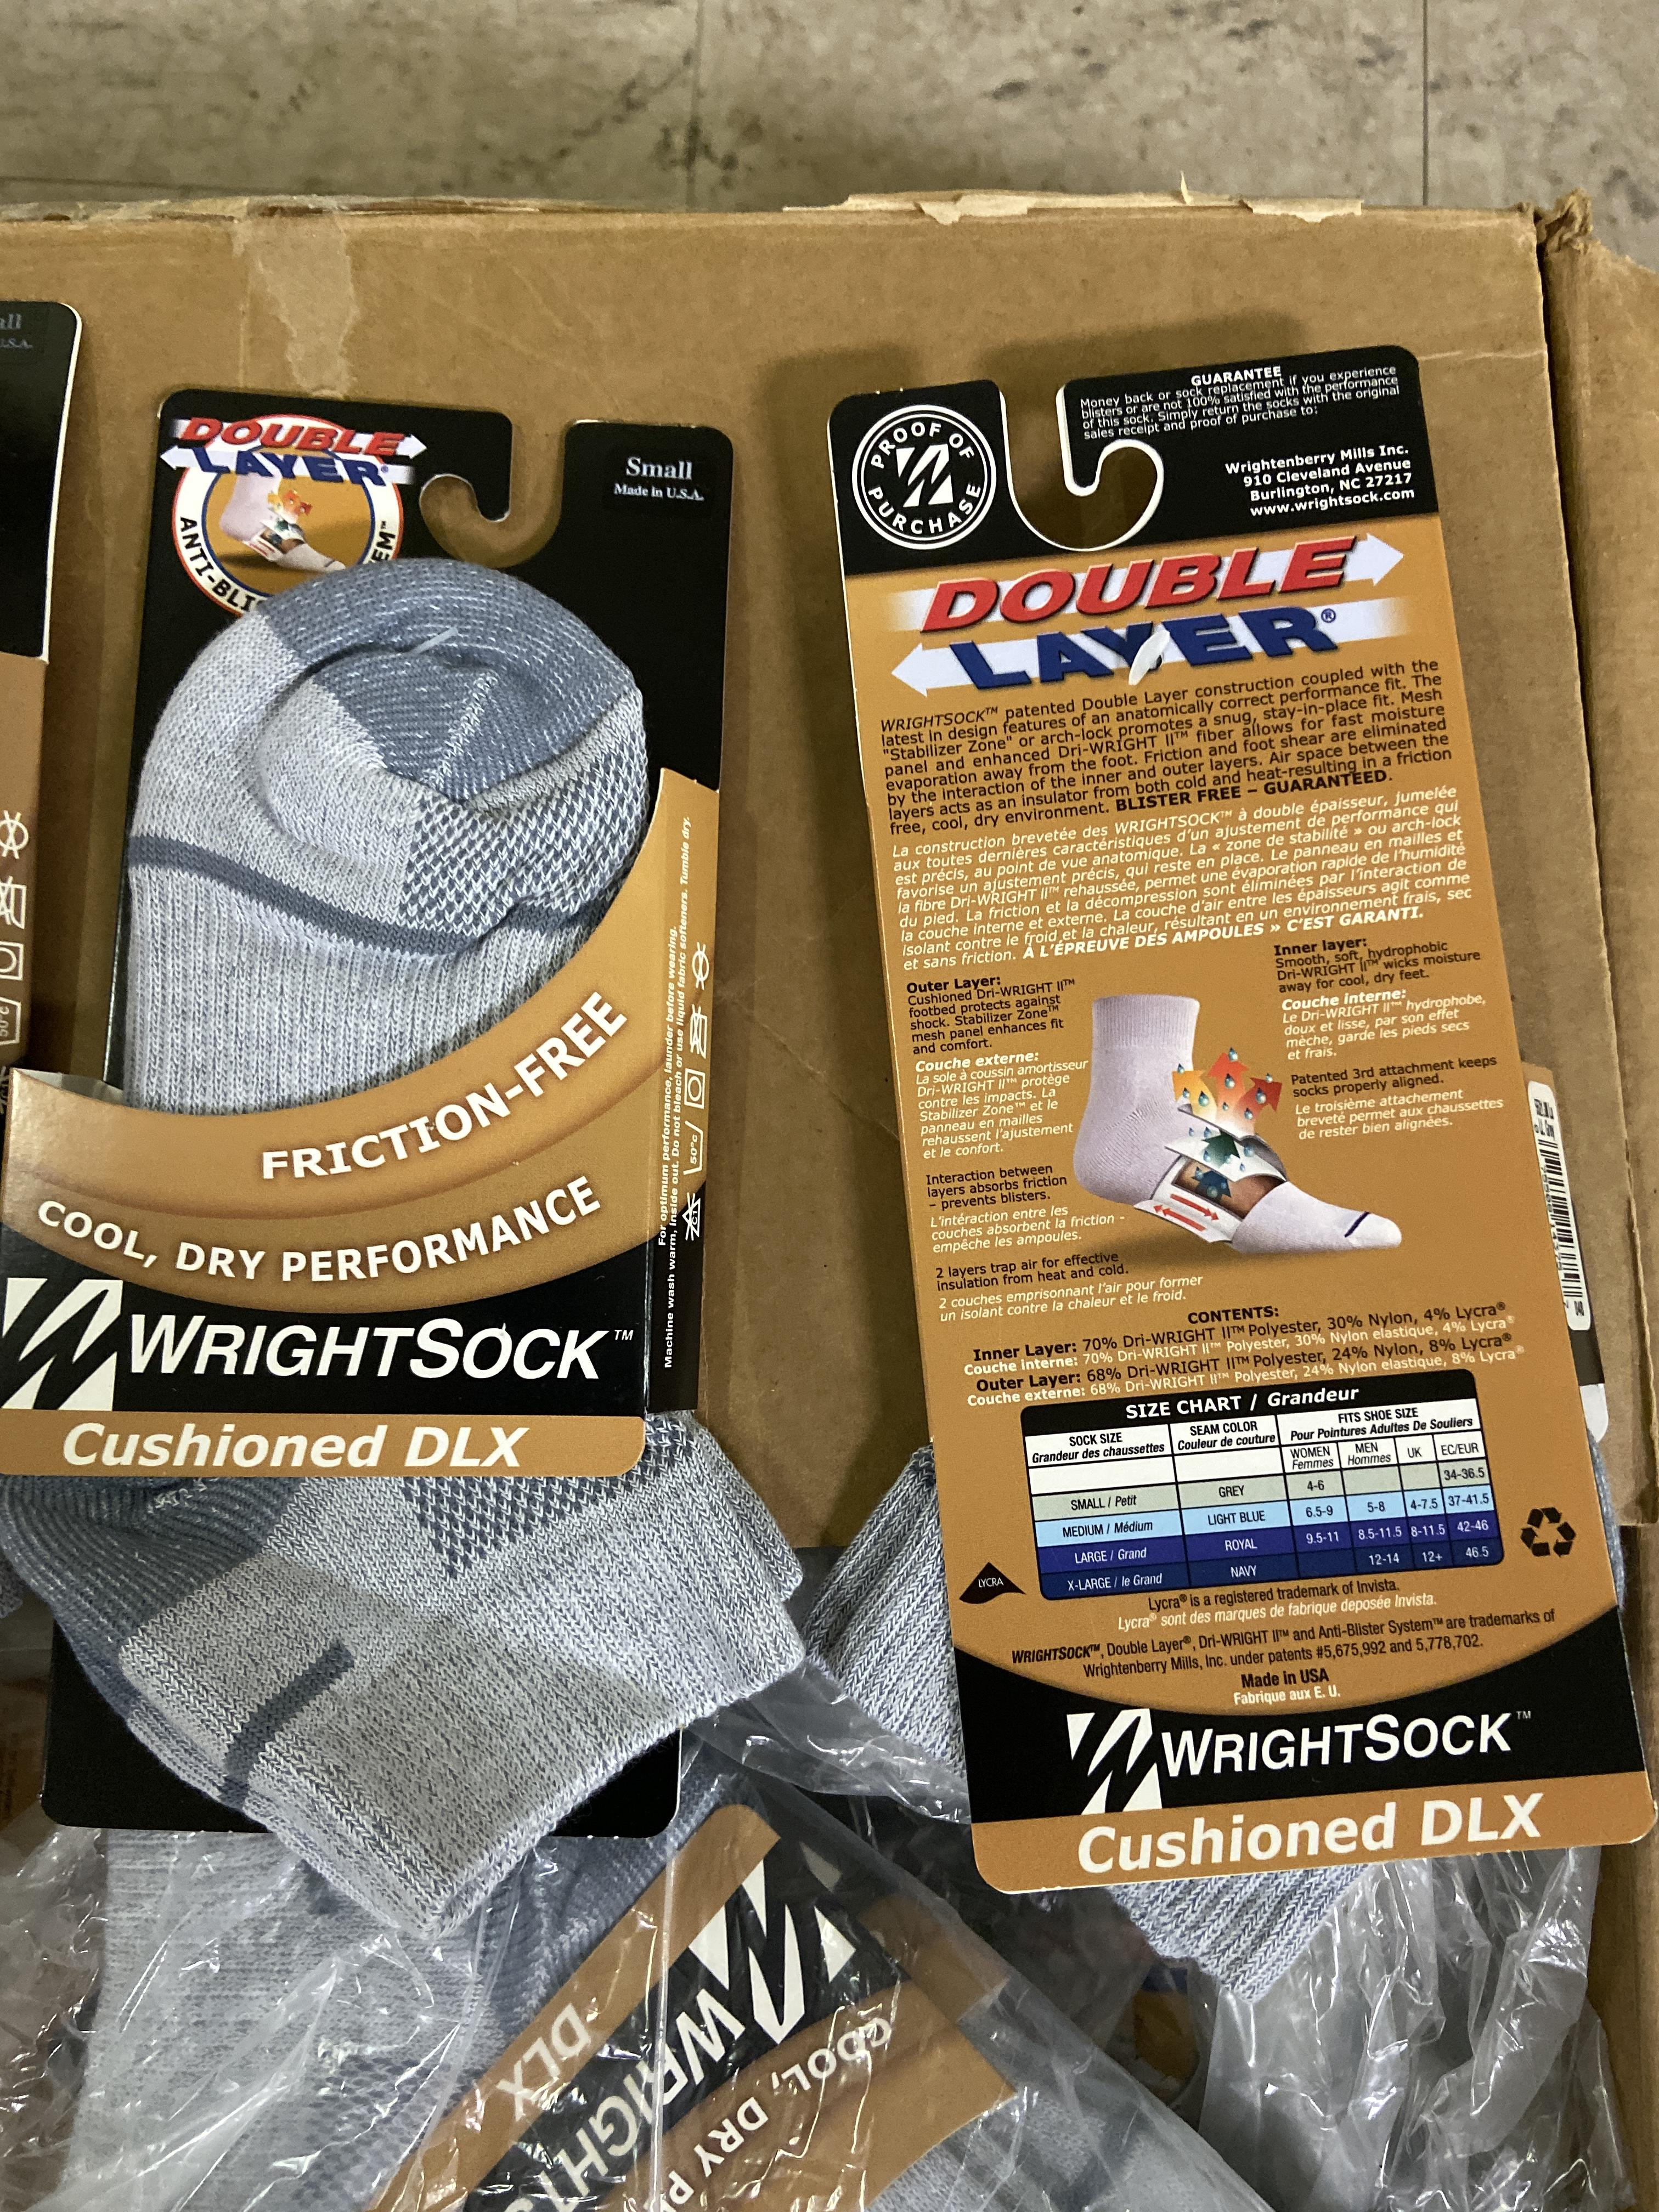 250+ packs of New Socks, Wrightsocks Cushioned DLX, Double Layer, Gray - Image 2 of 2